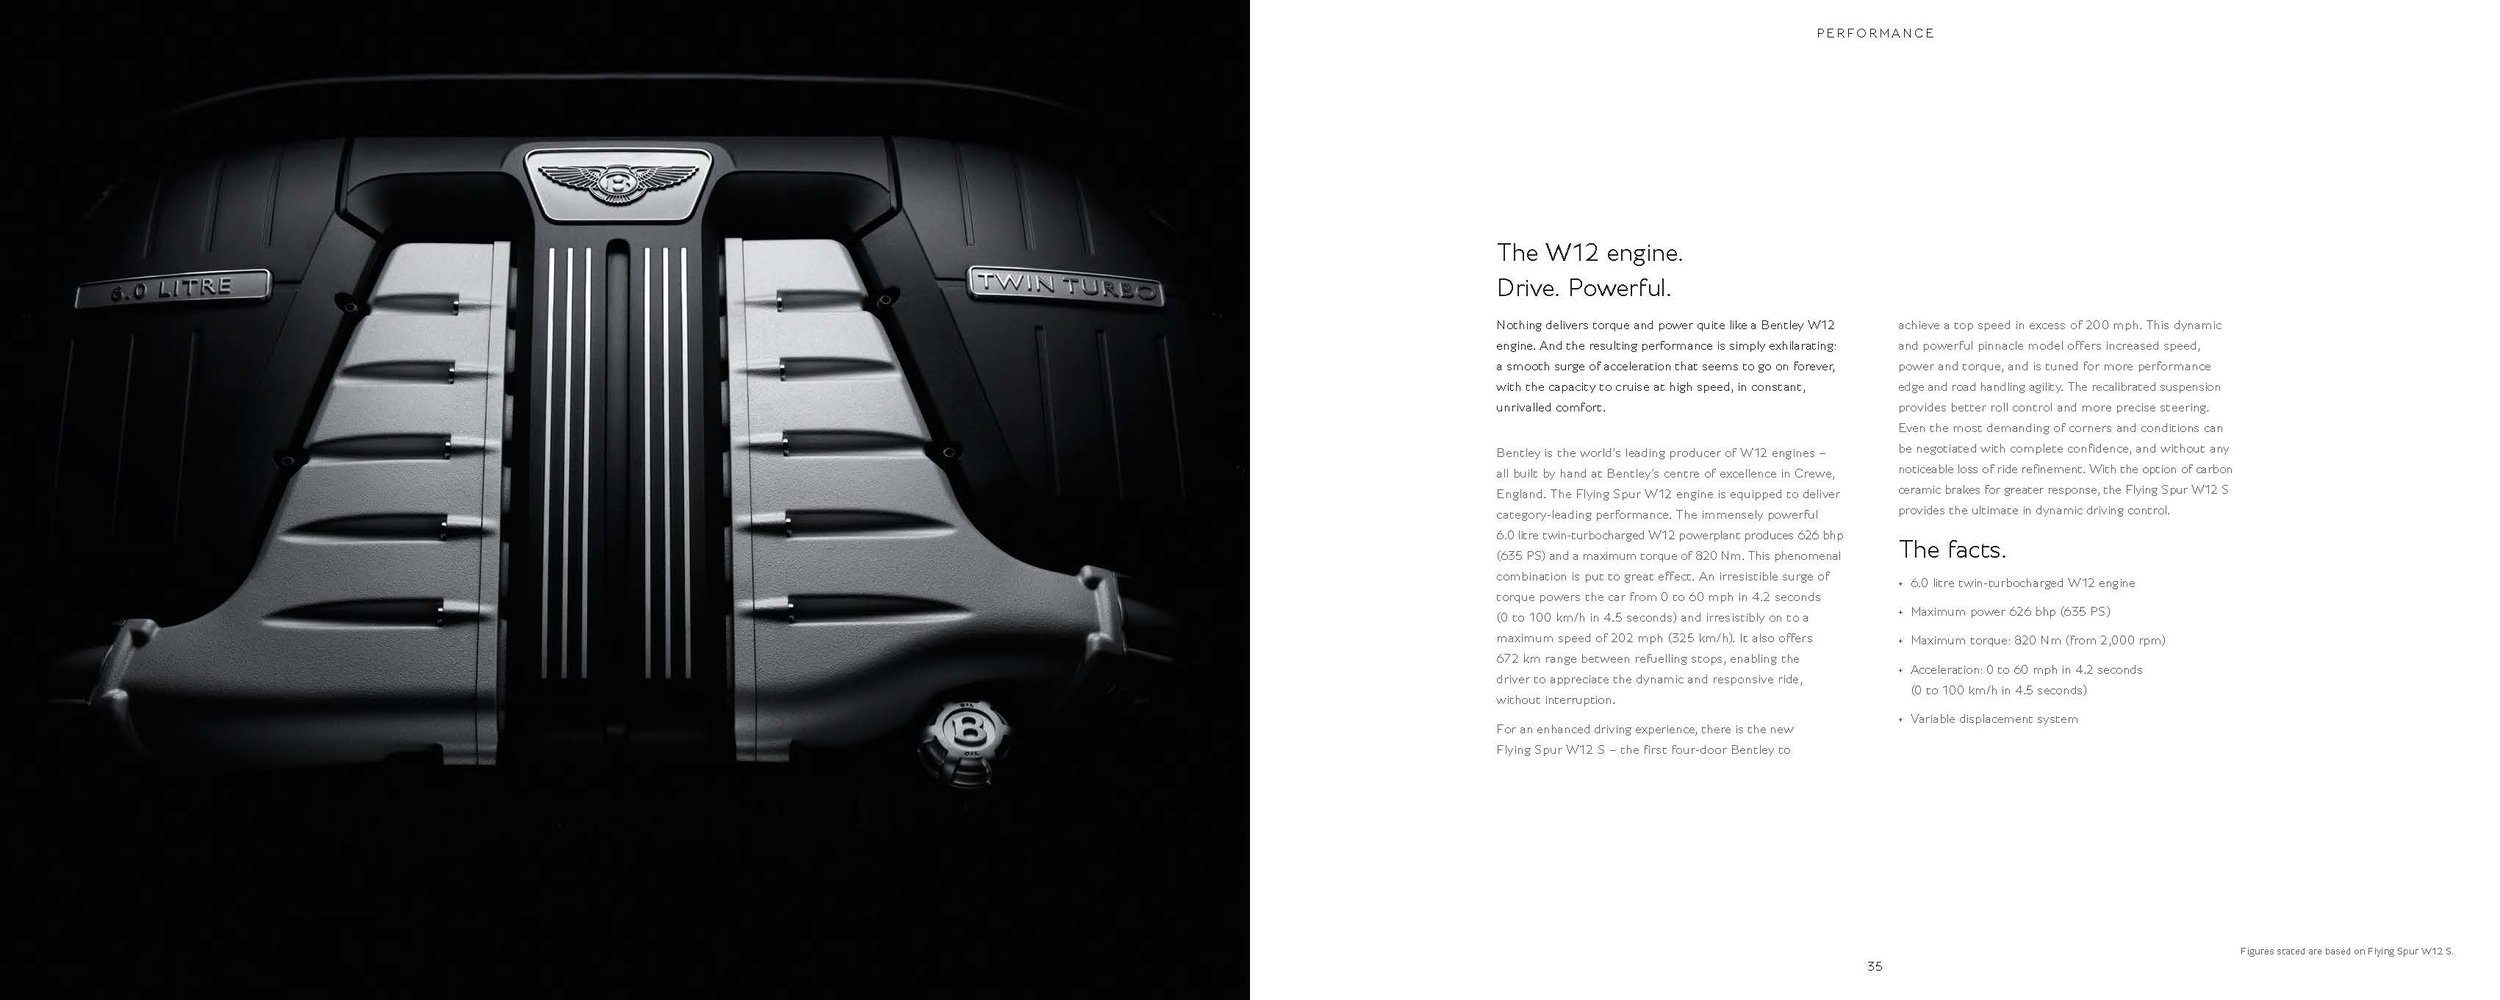 BENFS-16-012_Flying Spur Customer Book Cover & Contents CLEAN_v15_Page_20.jpg